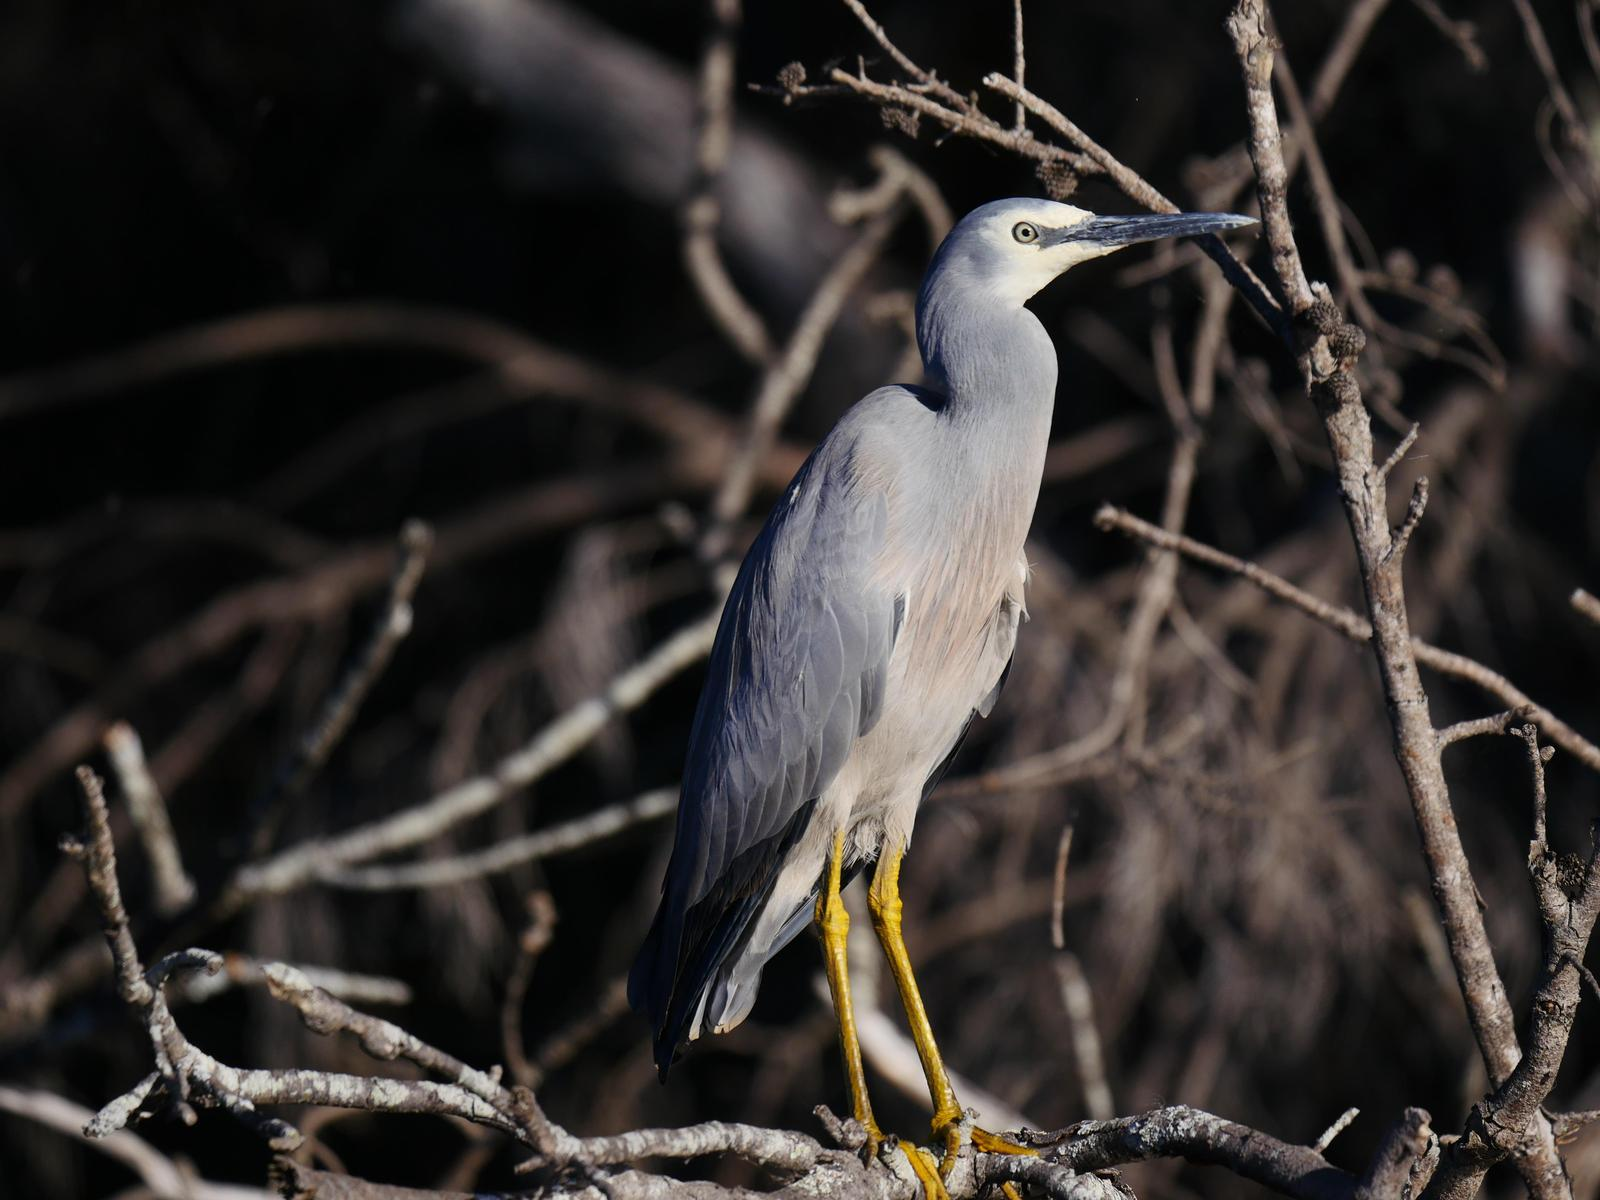 White-faced Heron Photo by Peter Lowe